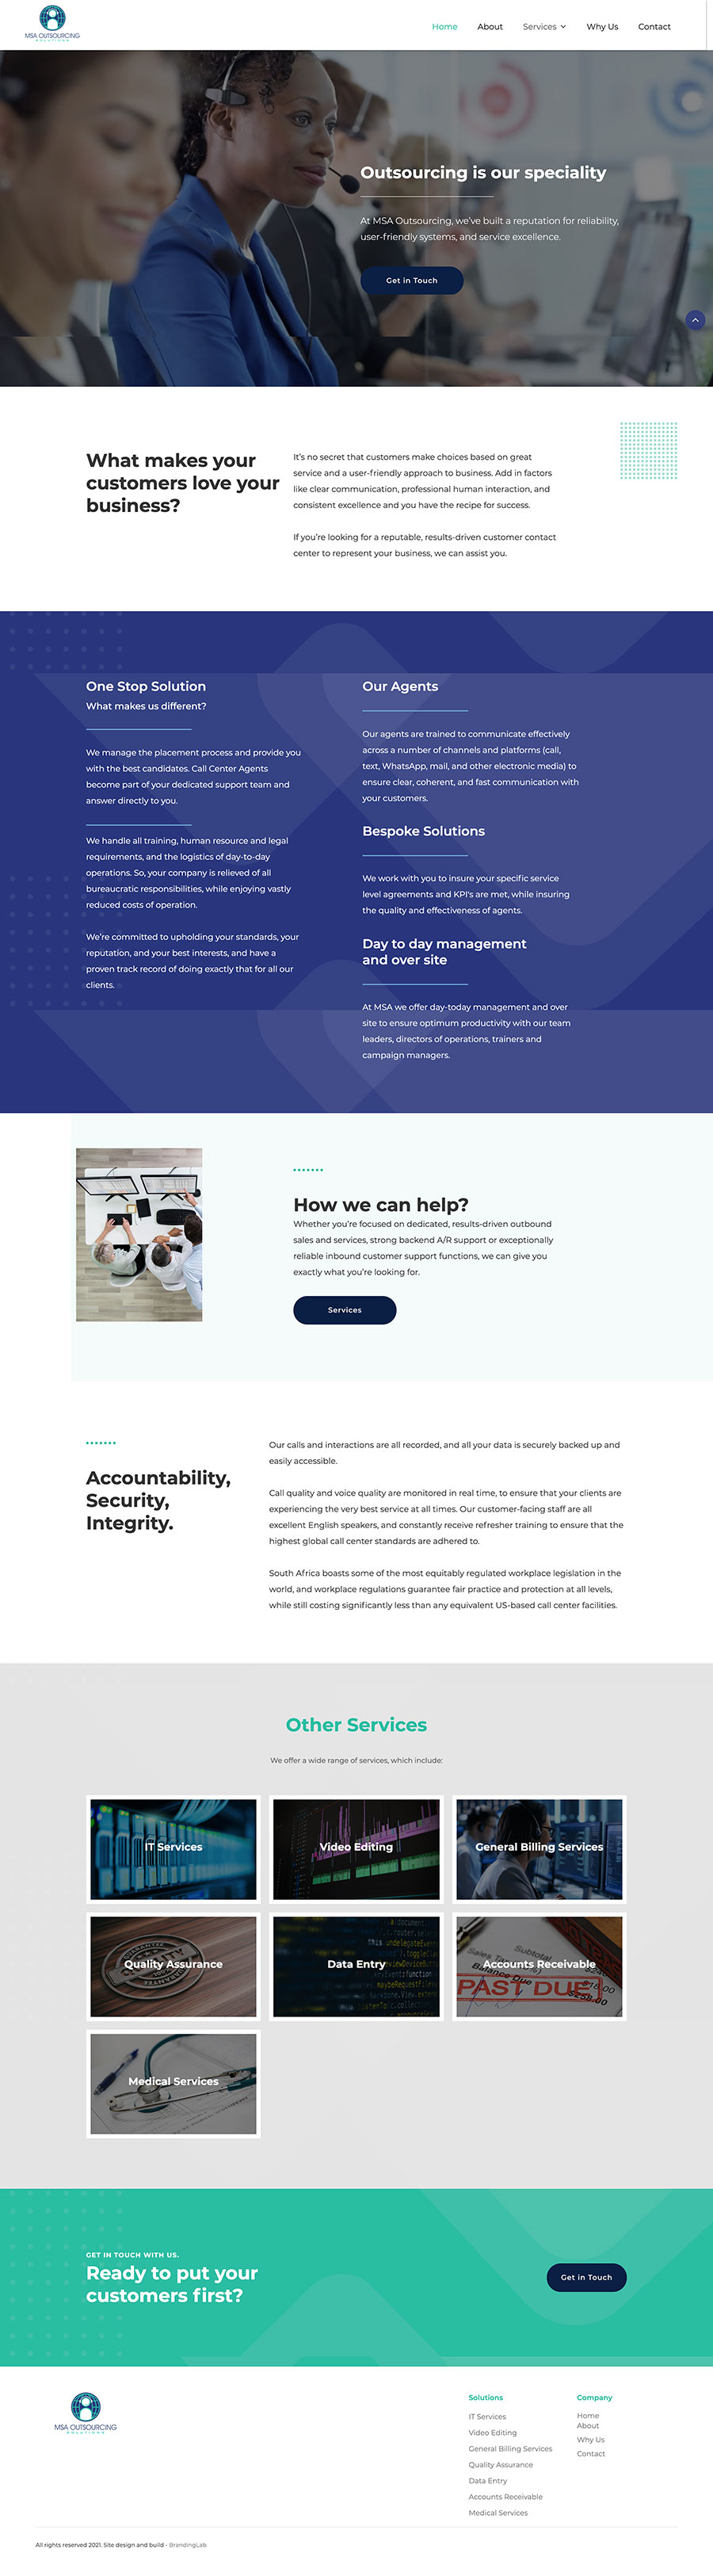 Landing page for MSAOS website.